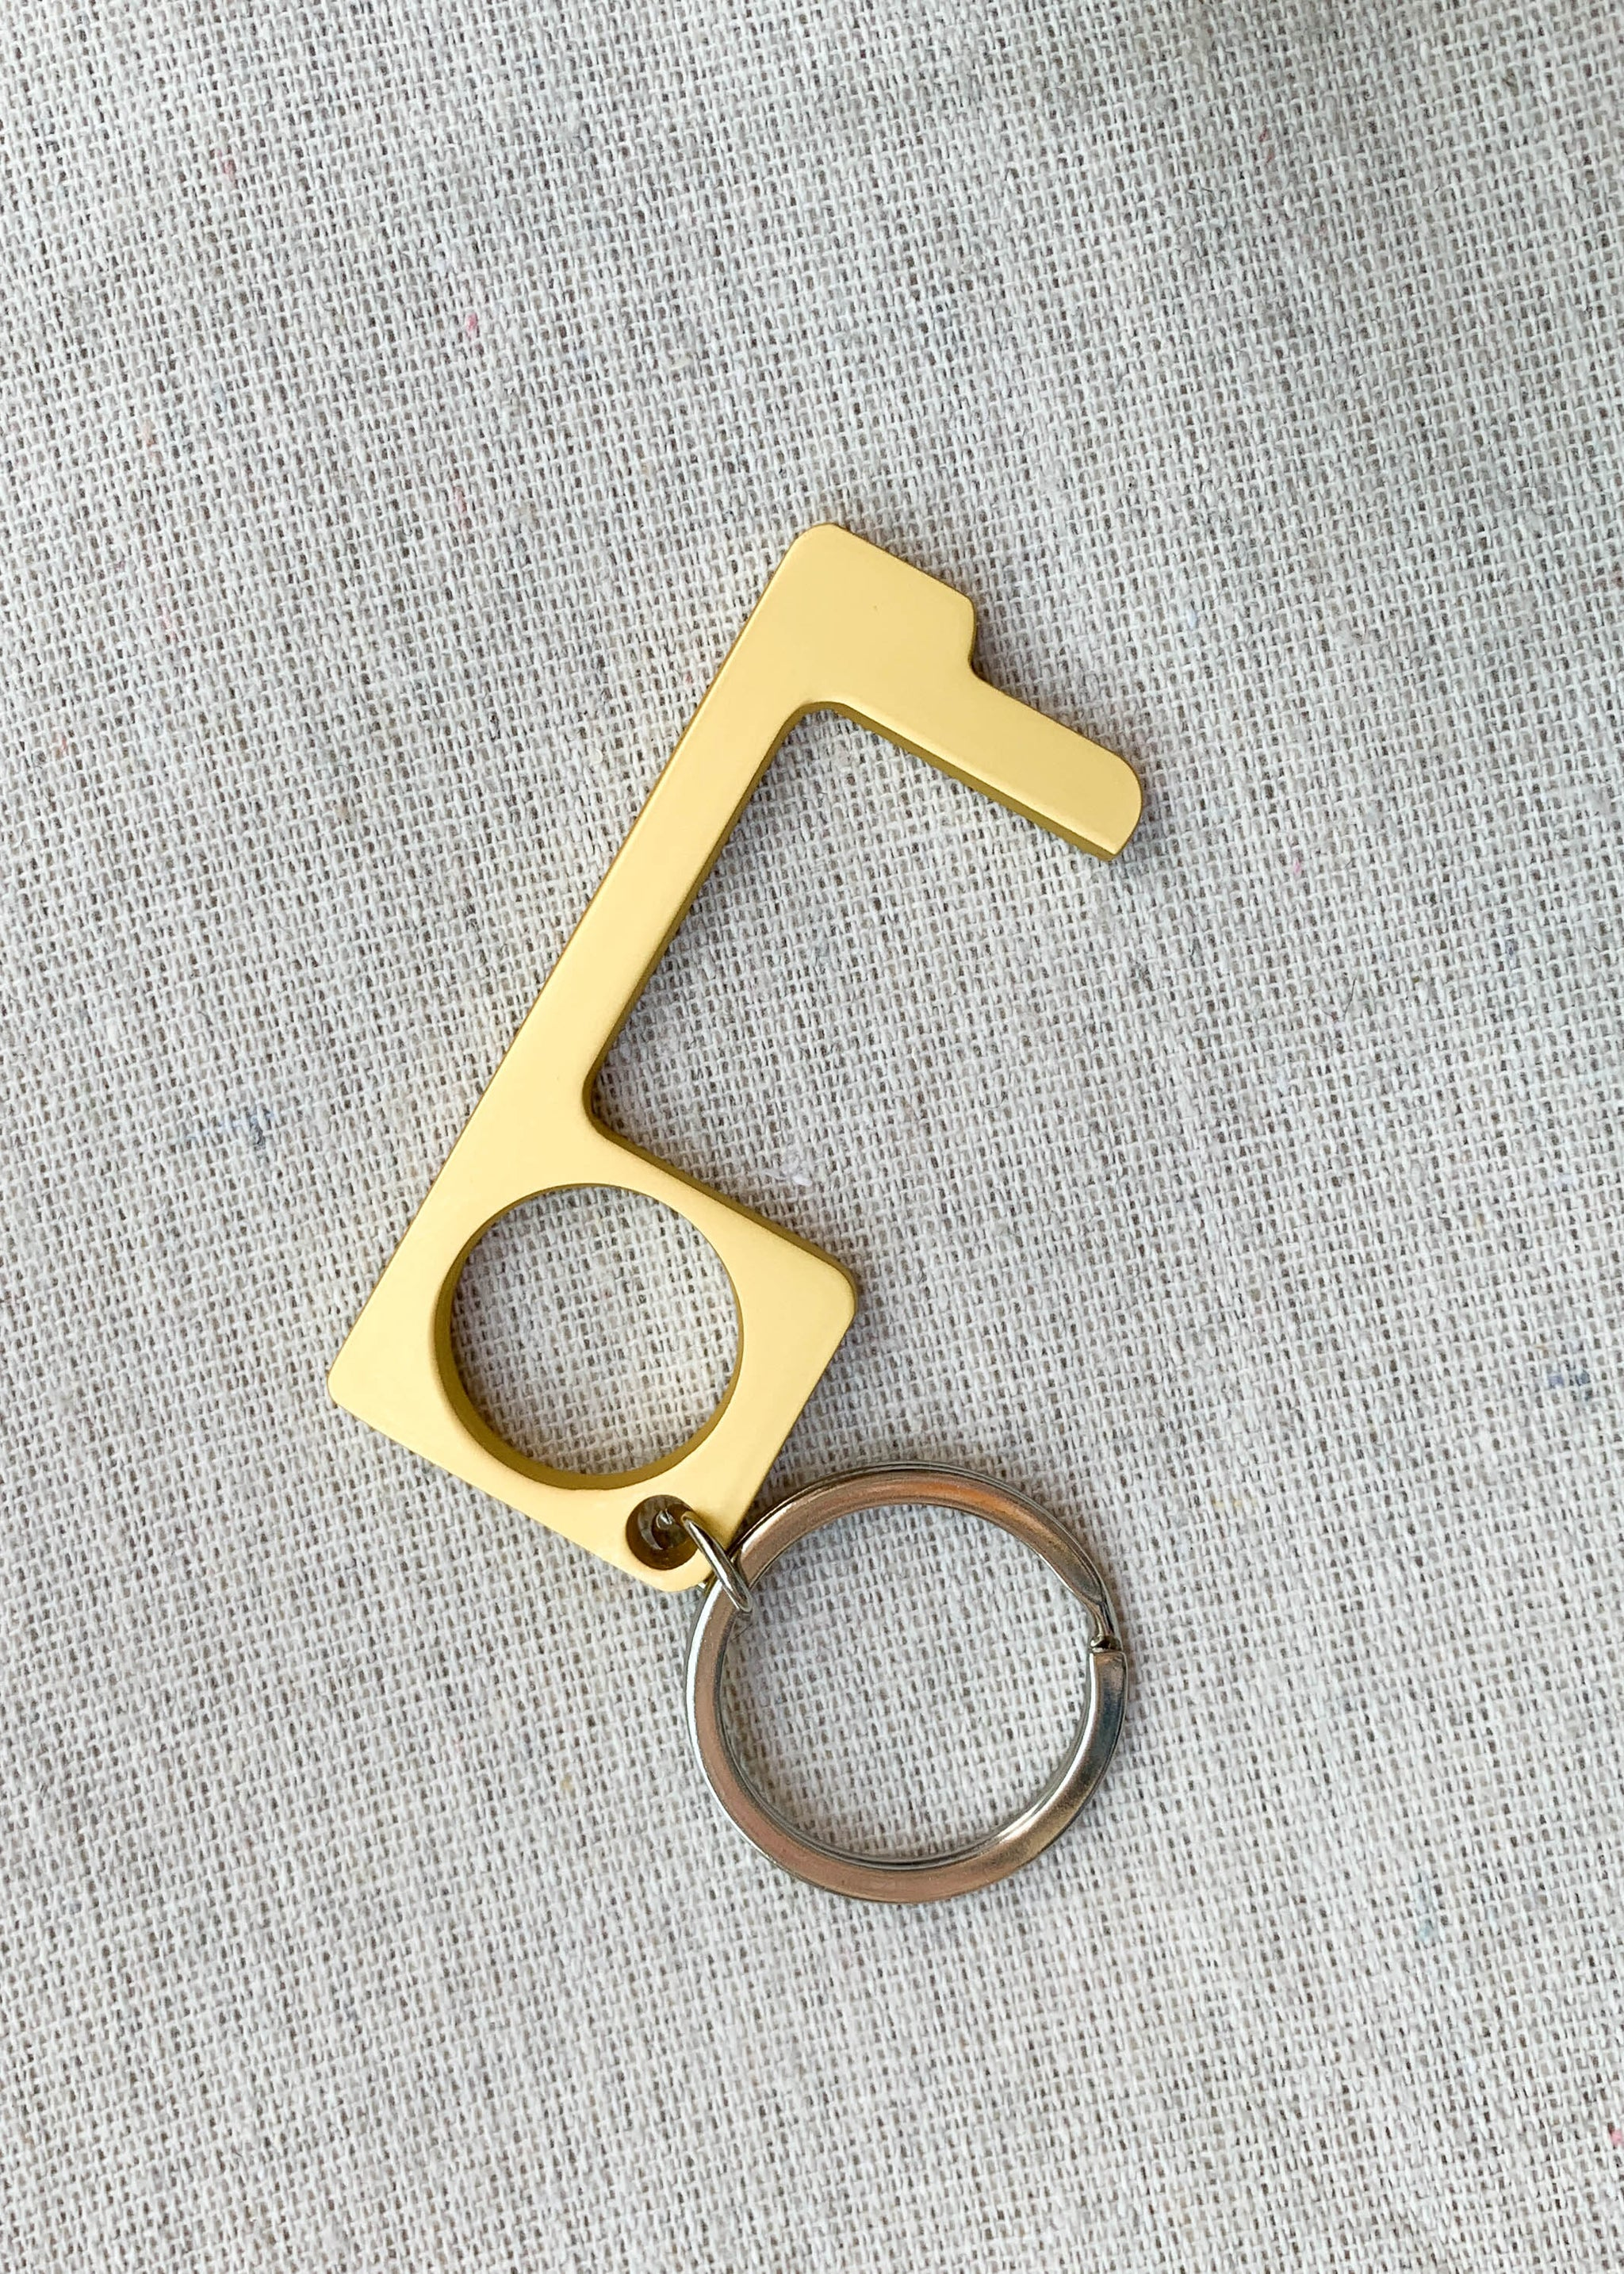 Overhead view of no-touch keychain in gold.